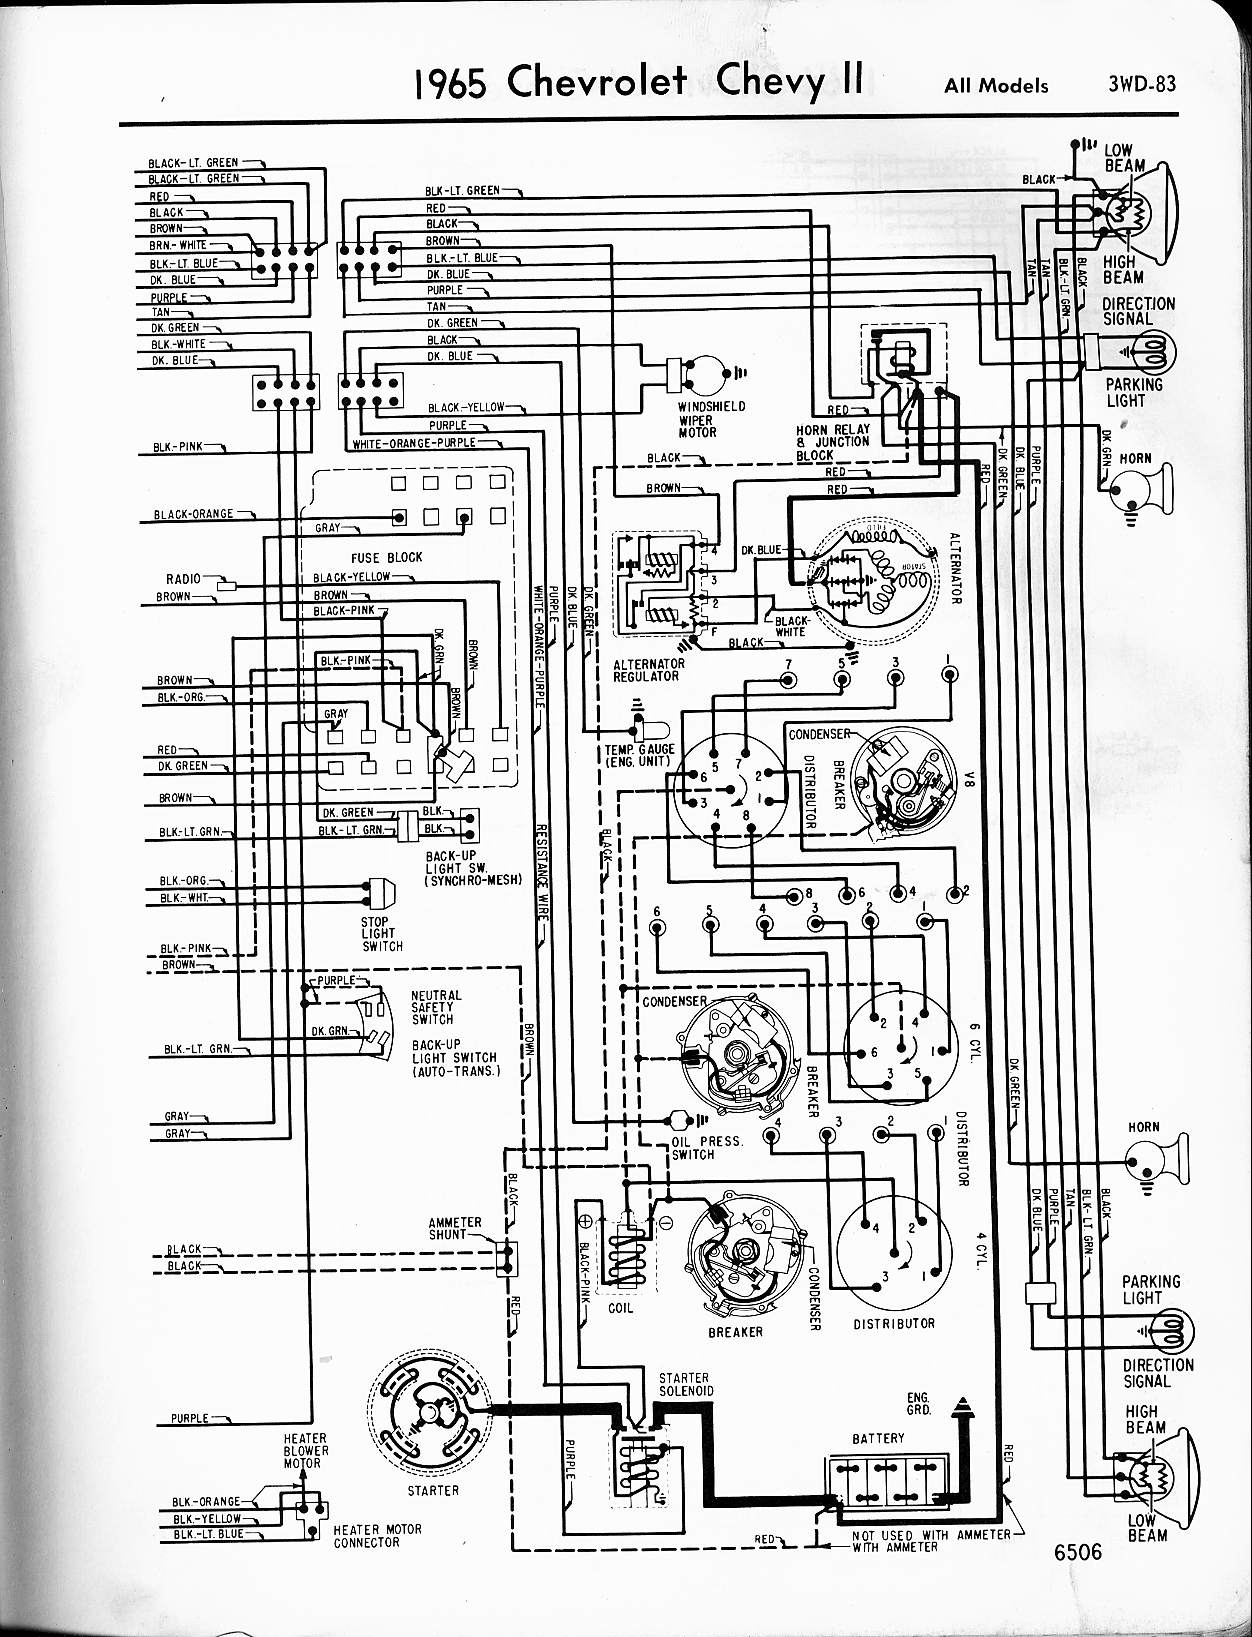 1983 C10 Fuse Box Wiring Diagram Libraries Mustang 1964 Chevy Truck Block Diagrams Data Diagram1965 Schematic